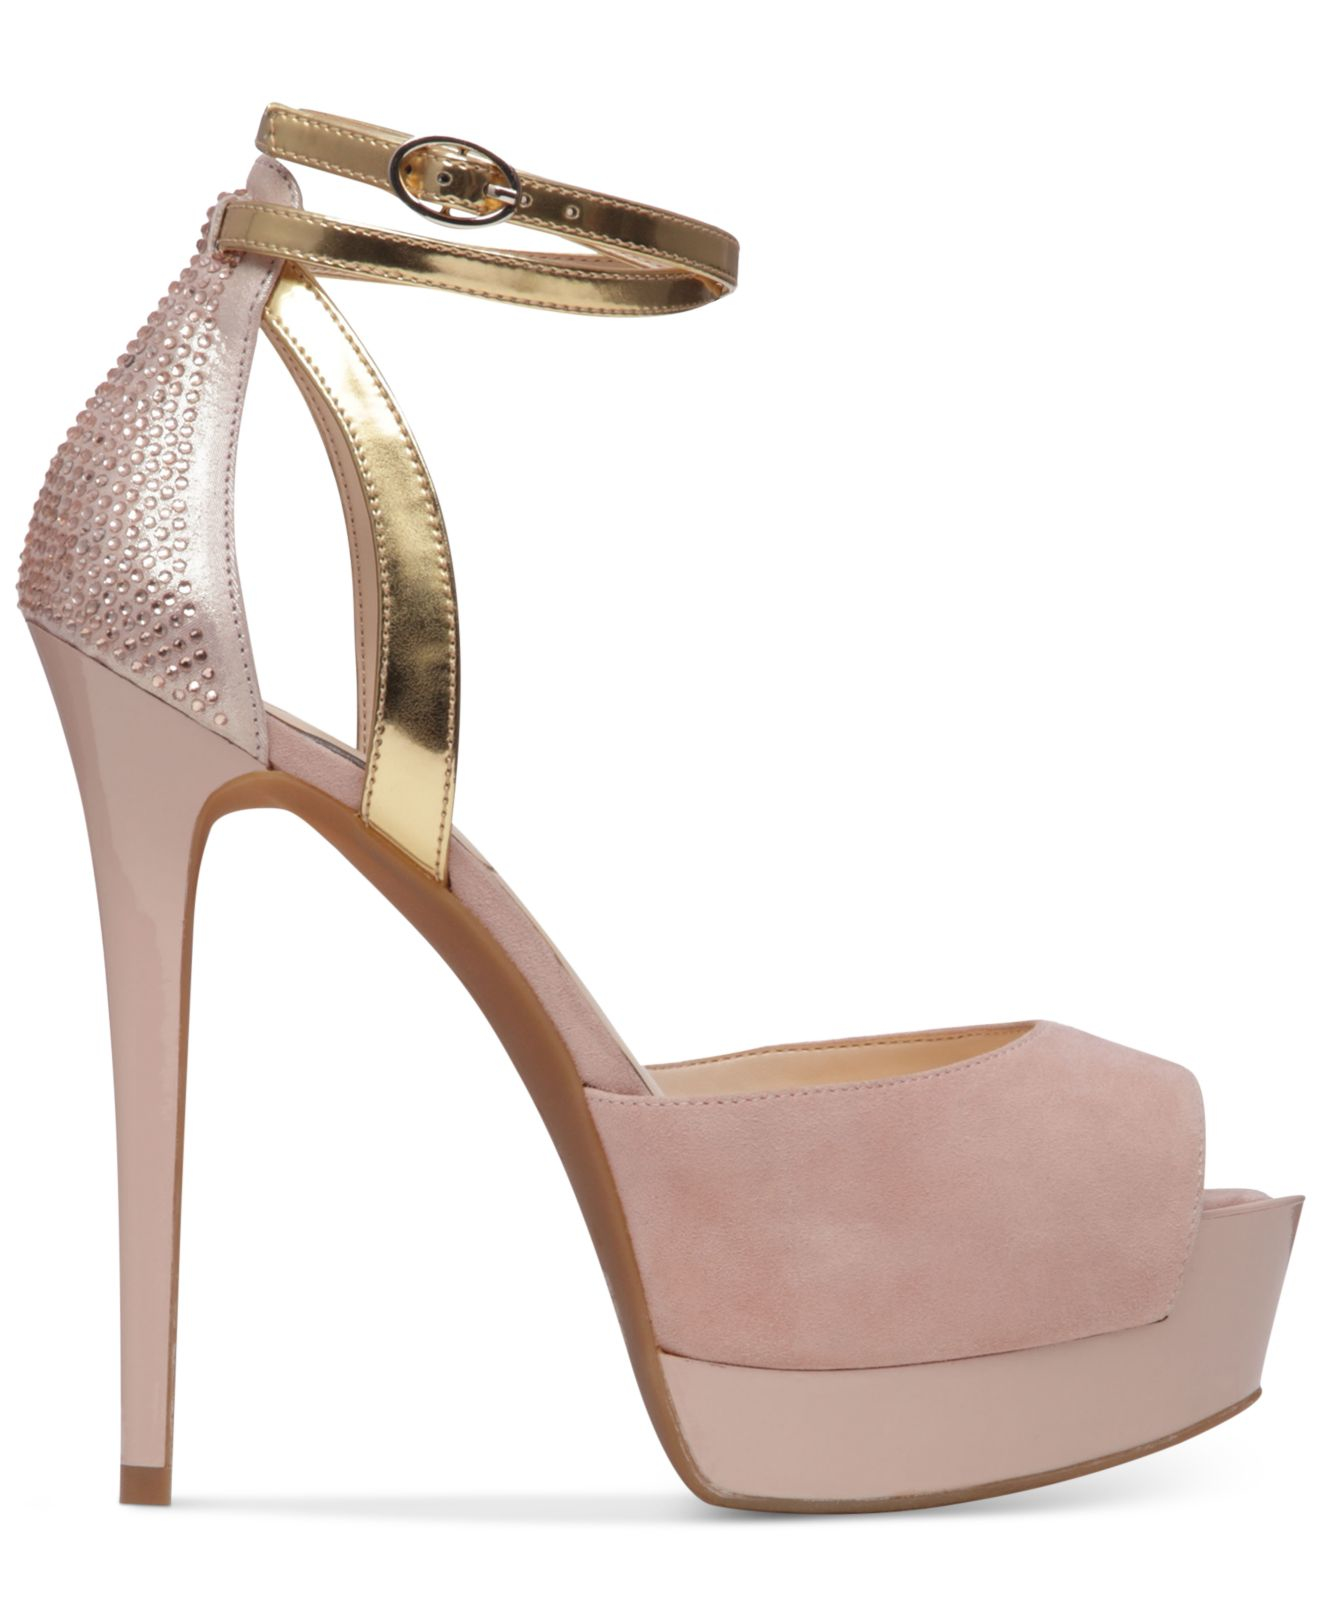 80e6e58324c5 Lyst - Jessica Simpson Koen Ankle-strap Platform Pumps in Natural